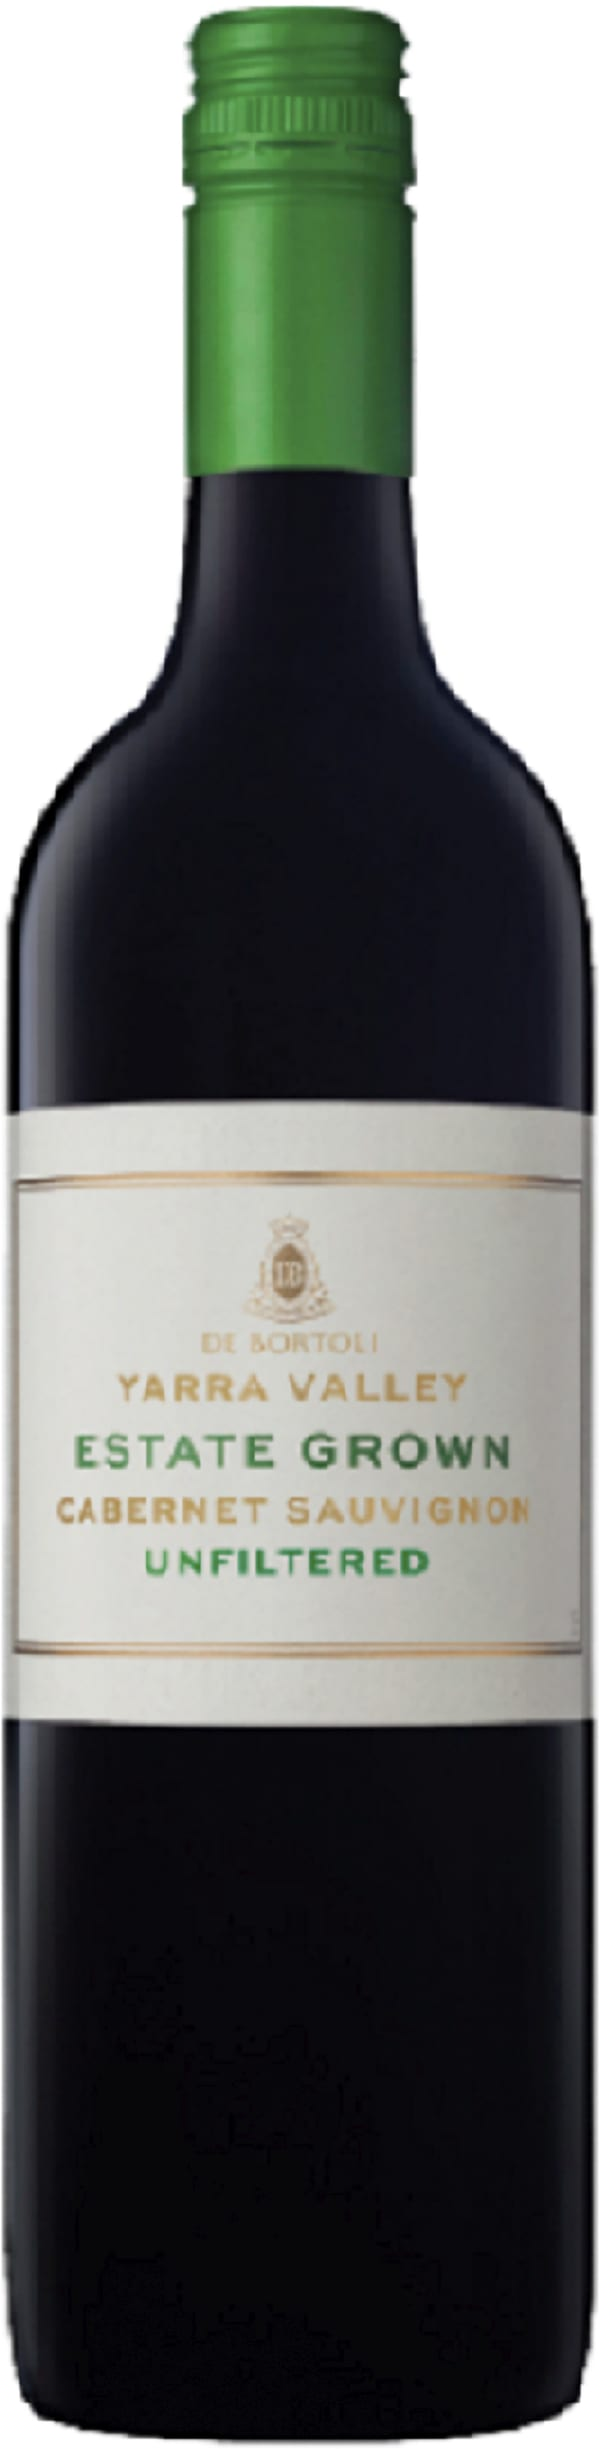 De Bortoli Estate Grown Cabernet Sauvignon 2015